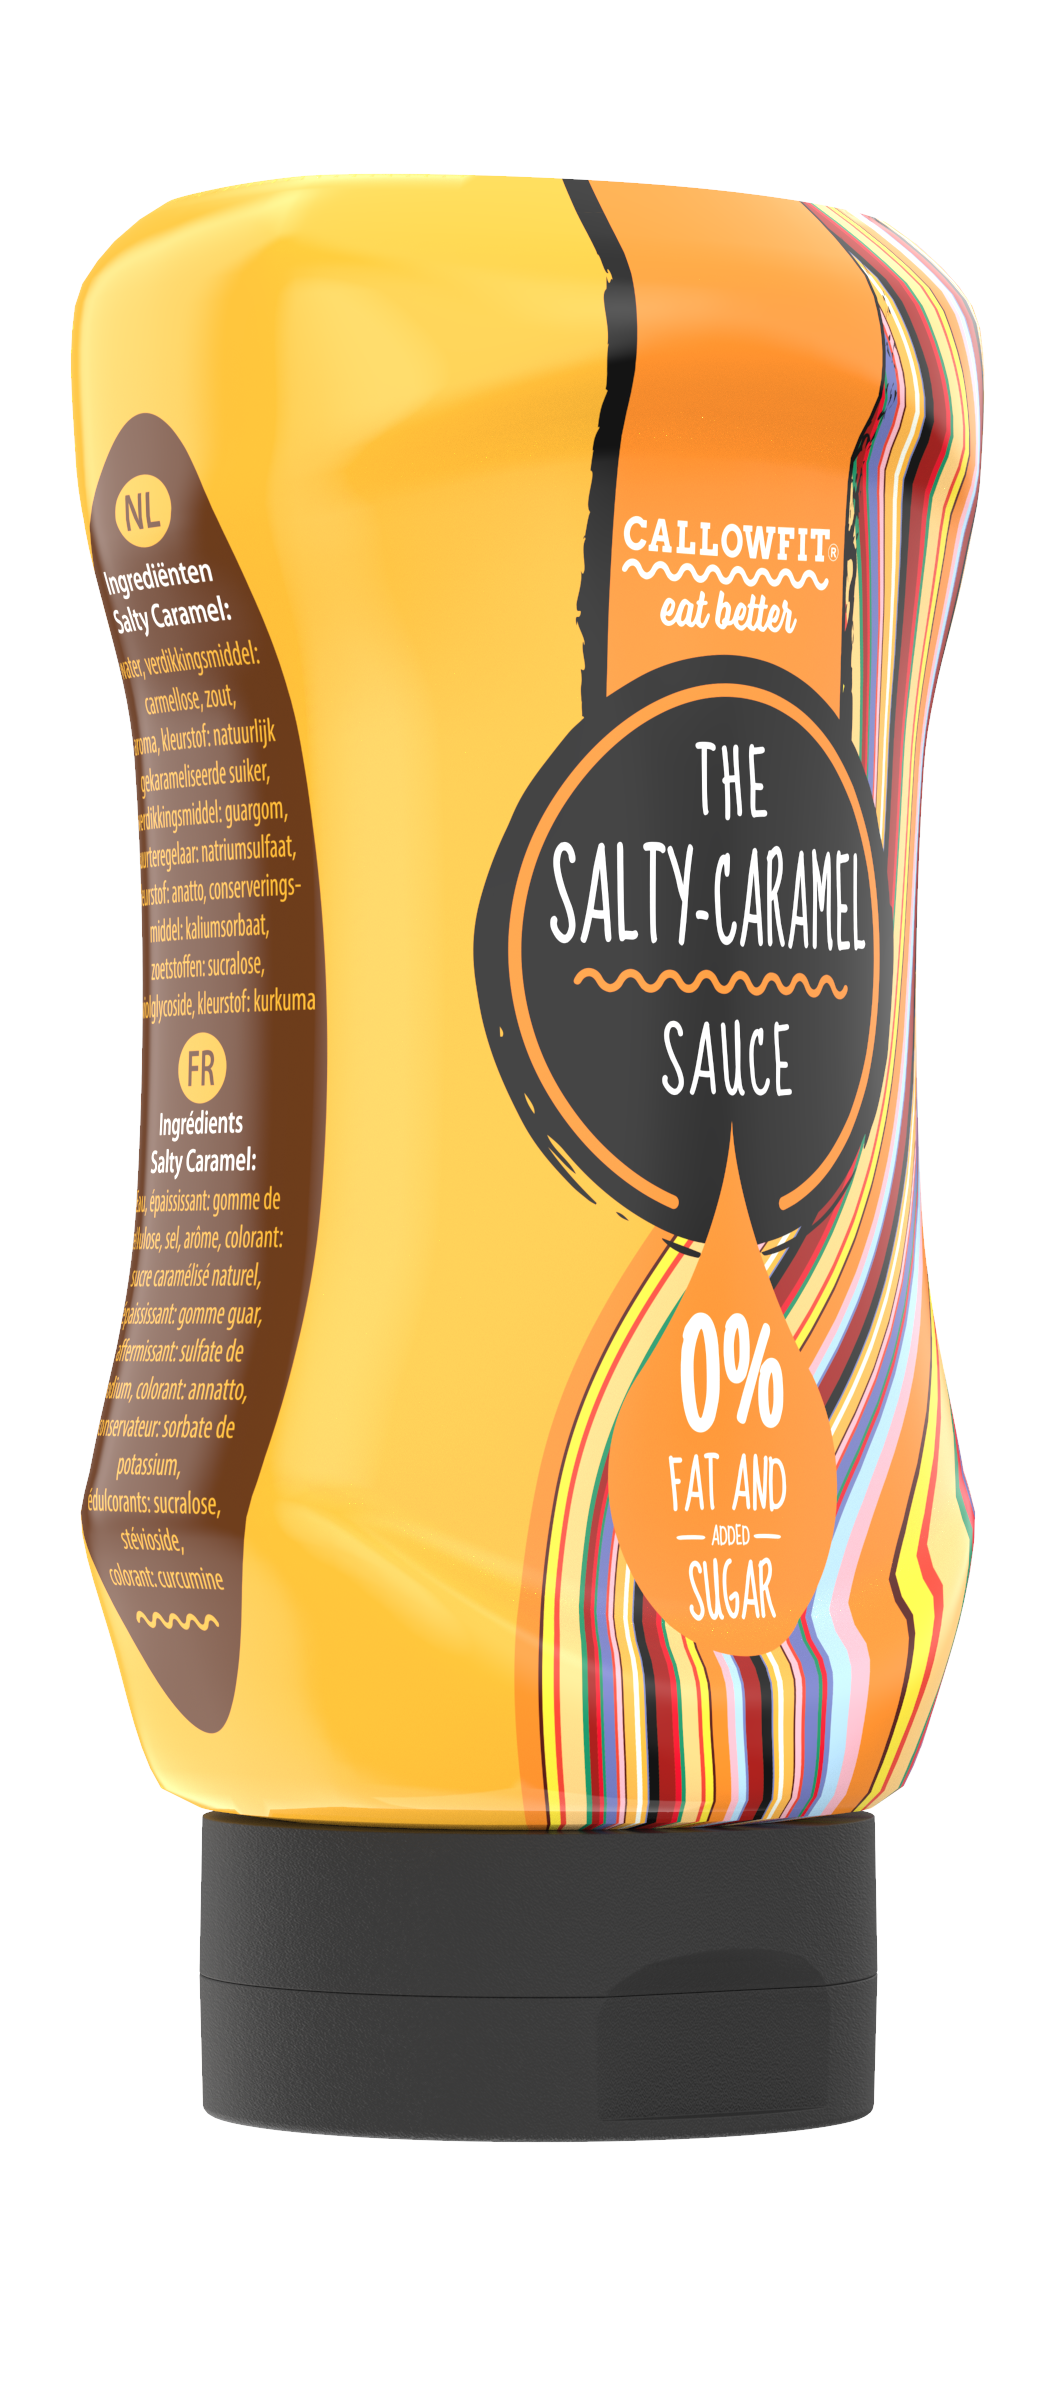 Afslanken_The_Salty_Caramel_Sauce_saus_Callowfit